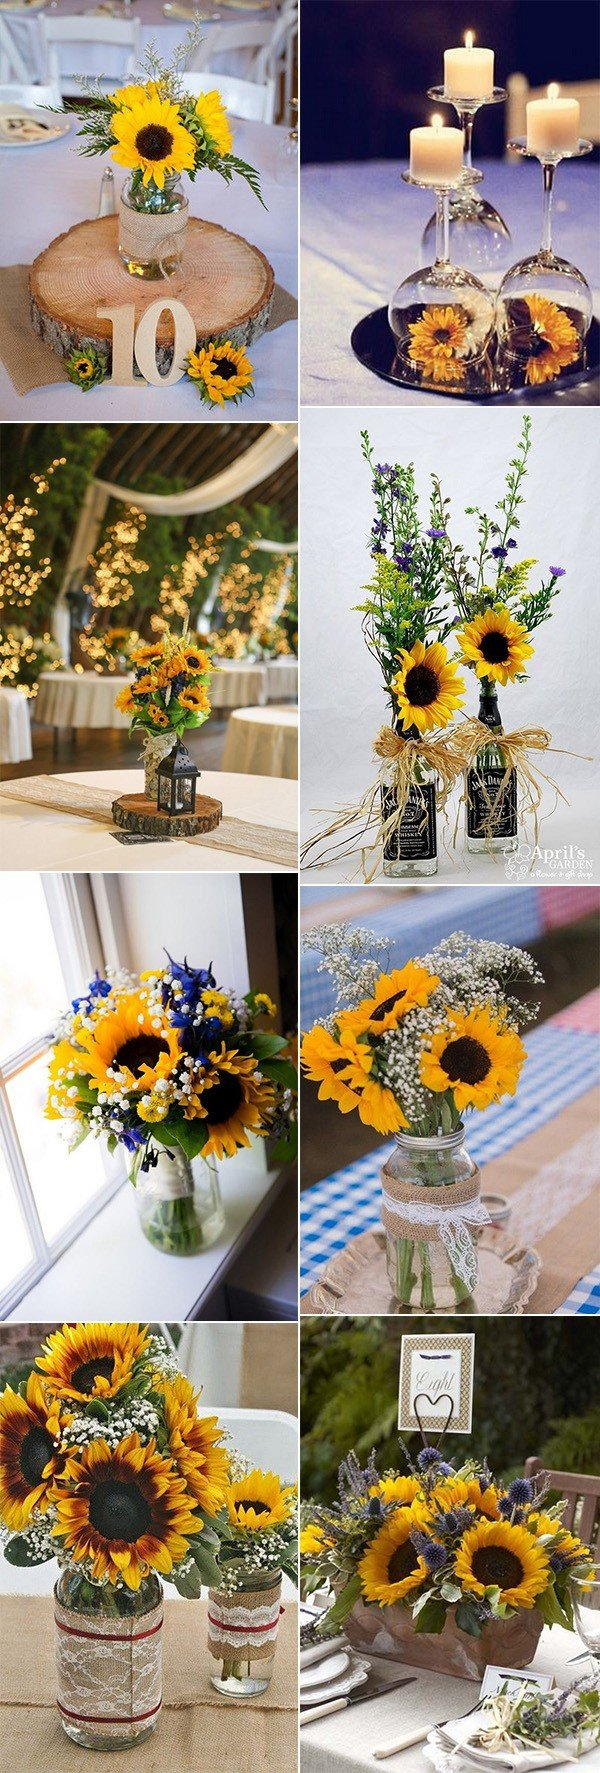 sunflowers themed wedding centerpiece ideas